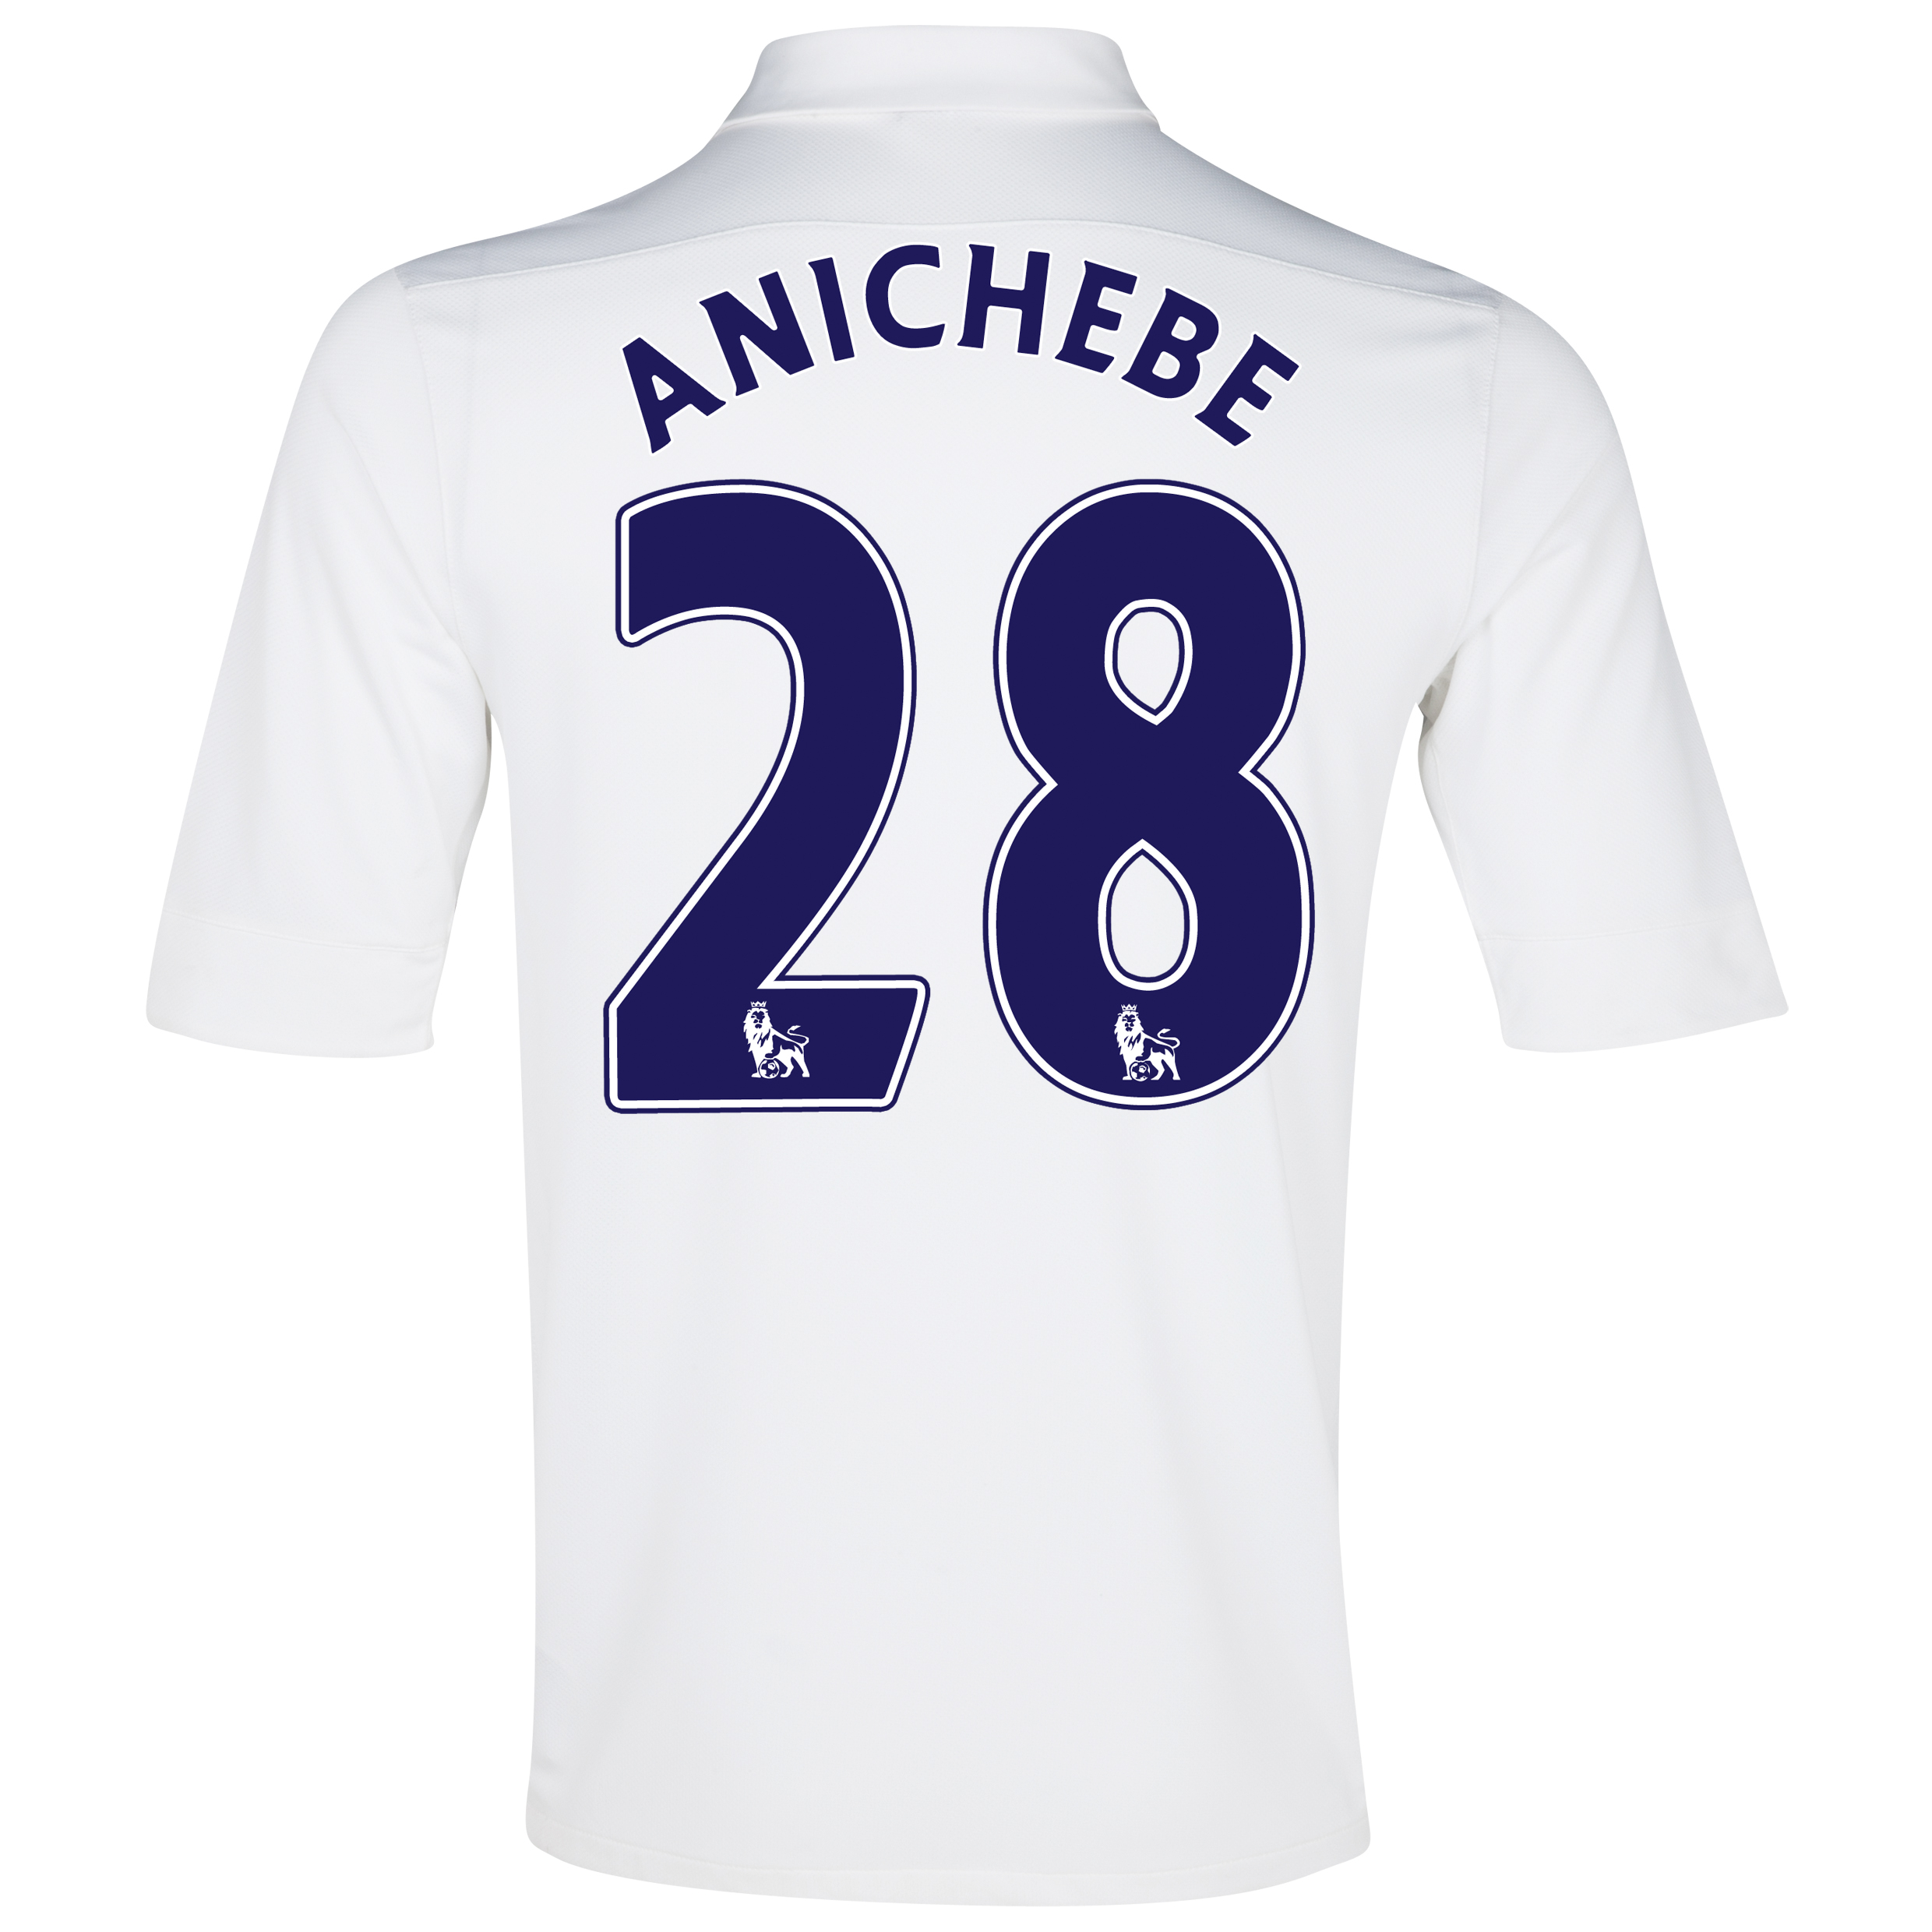 Everton 3rd Shirt 2012/13 with Anichebe 28 printing